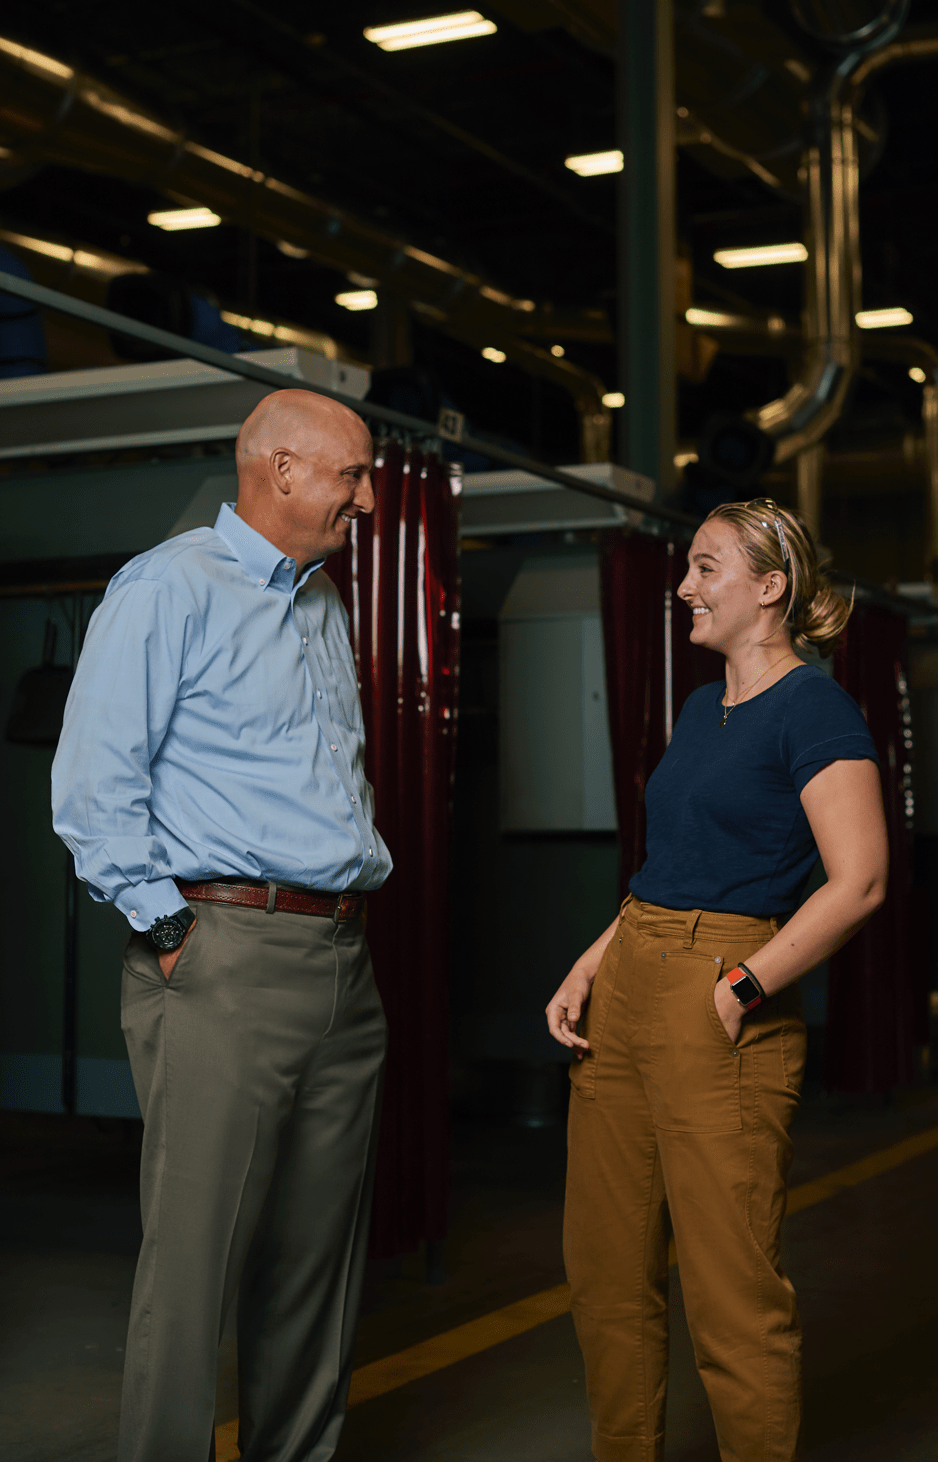 A Male Attorney and a Woman Talking in a Factory